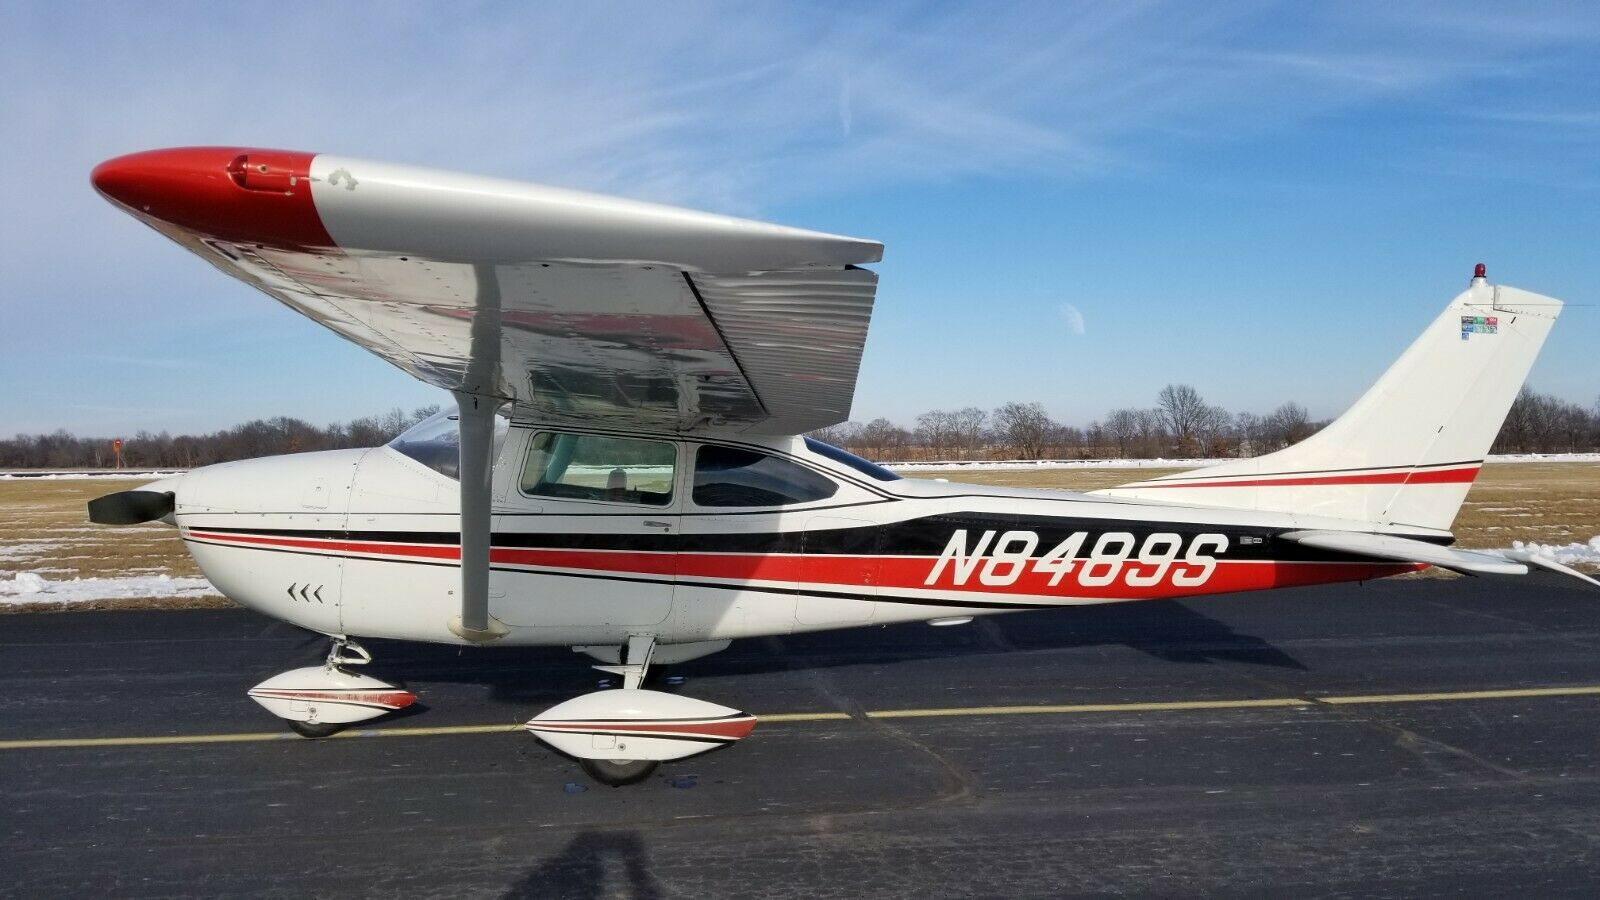 low time 1965 Cessna 182H SKYLANE aircraft for sale